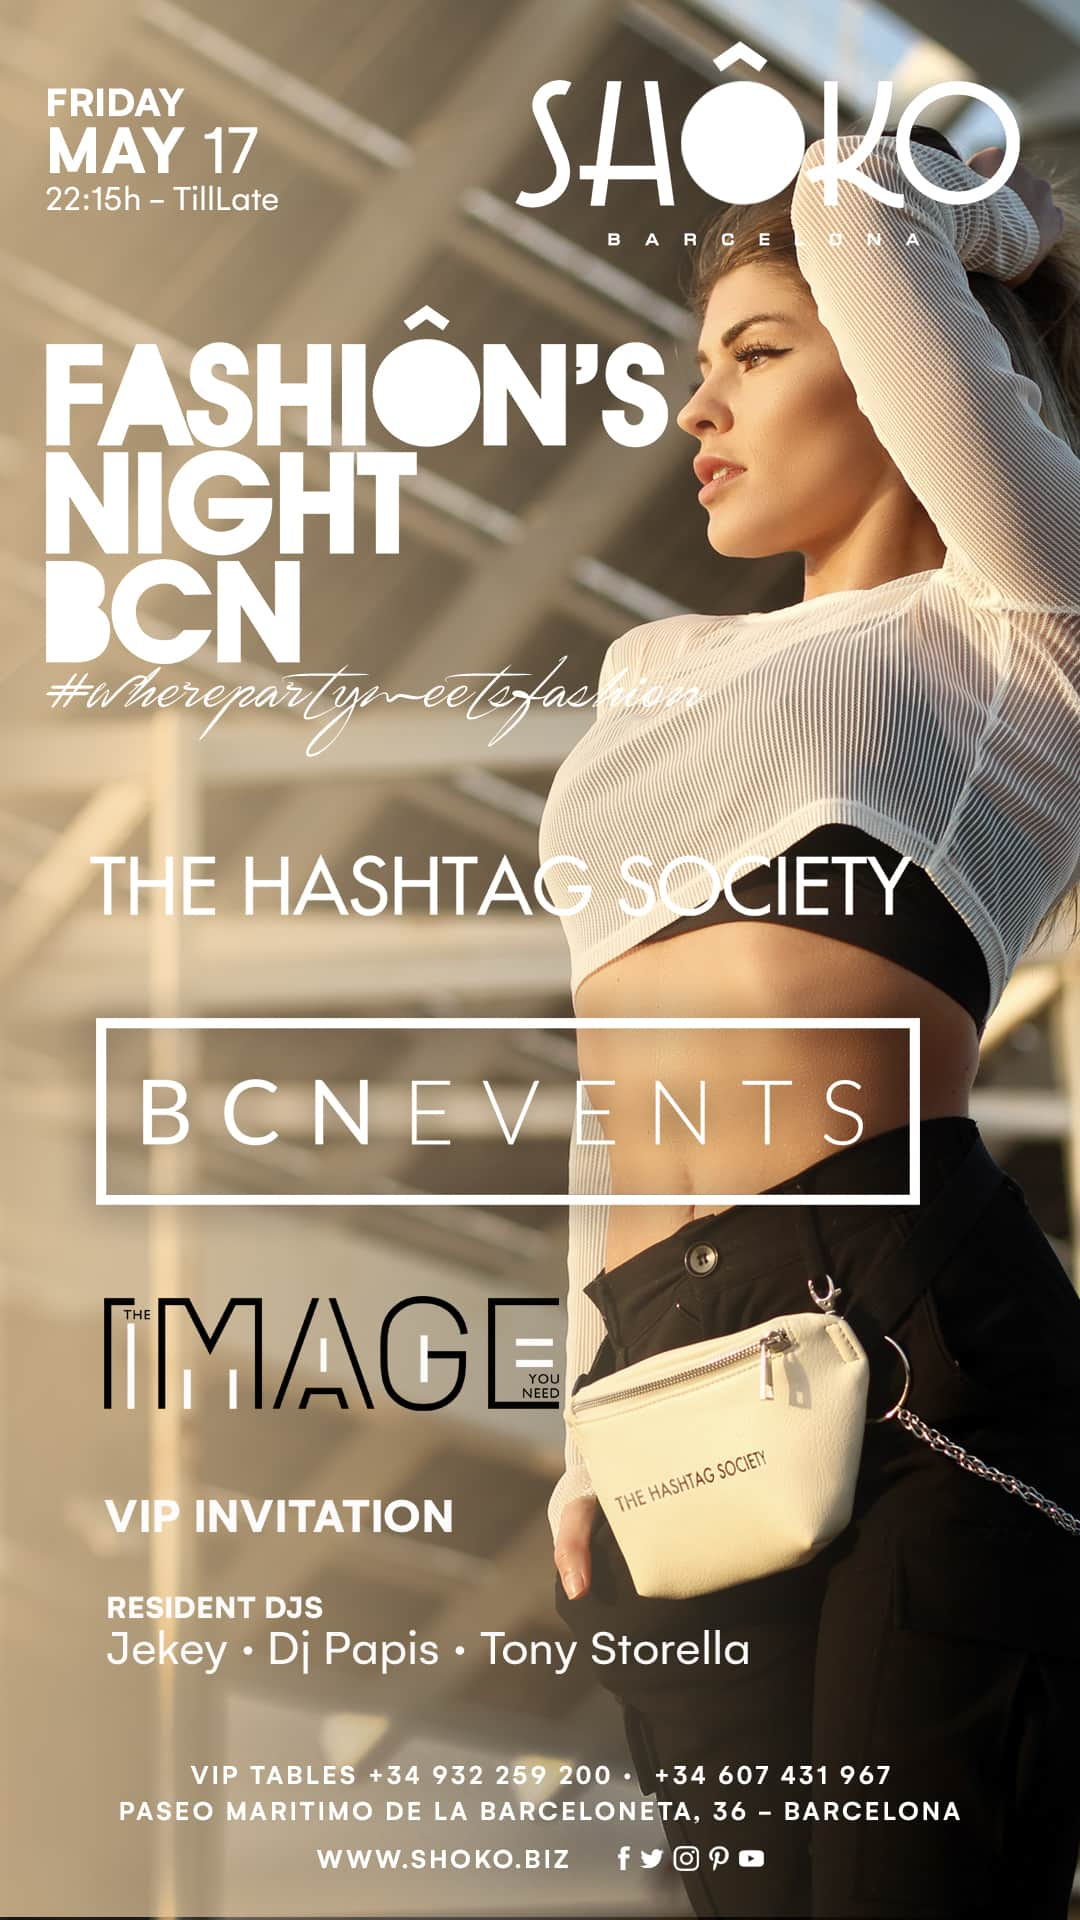 Fashion's Night BCN